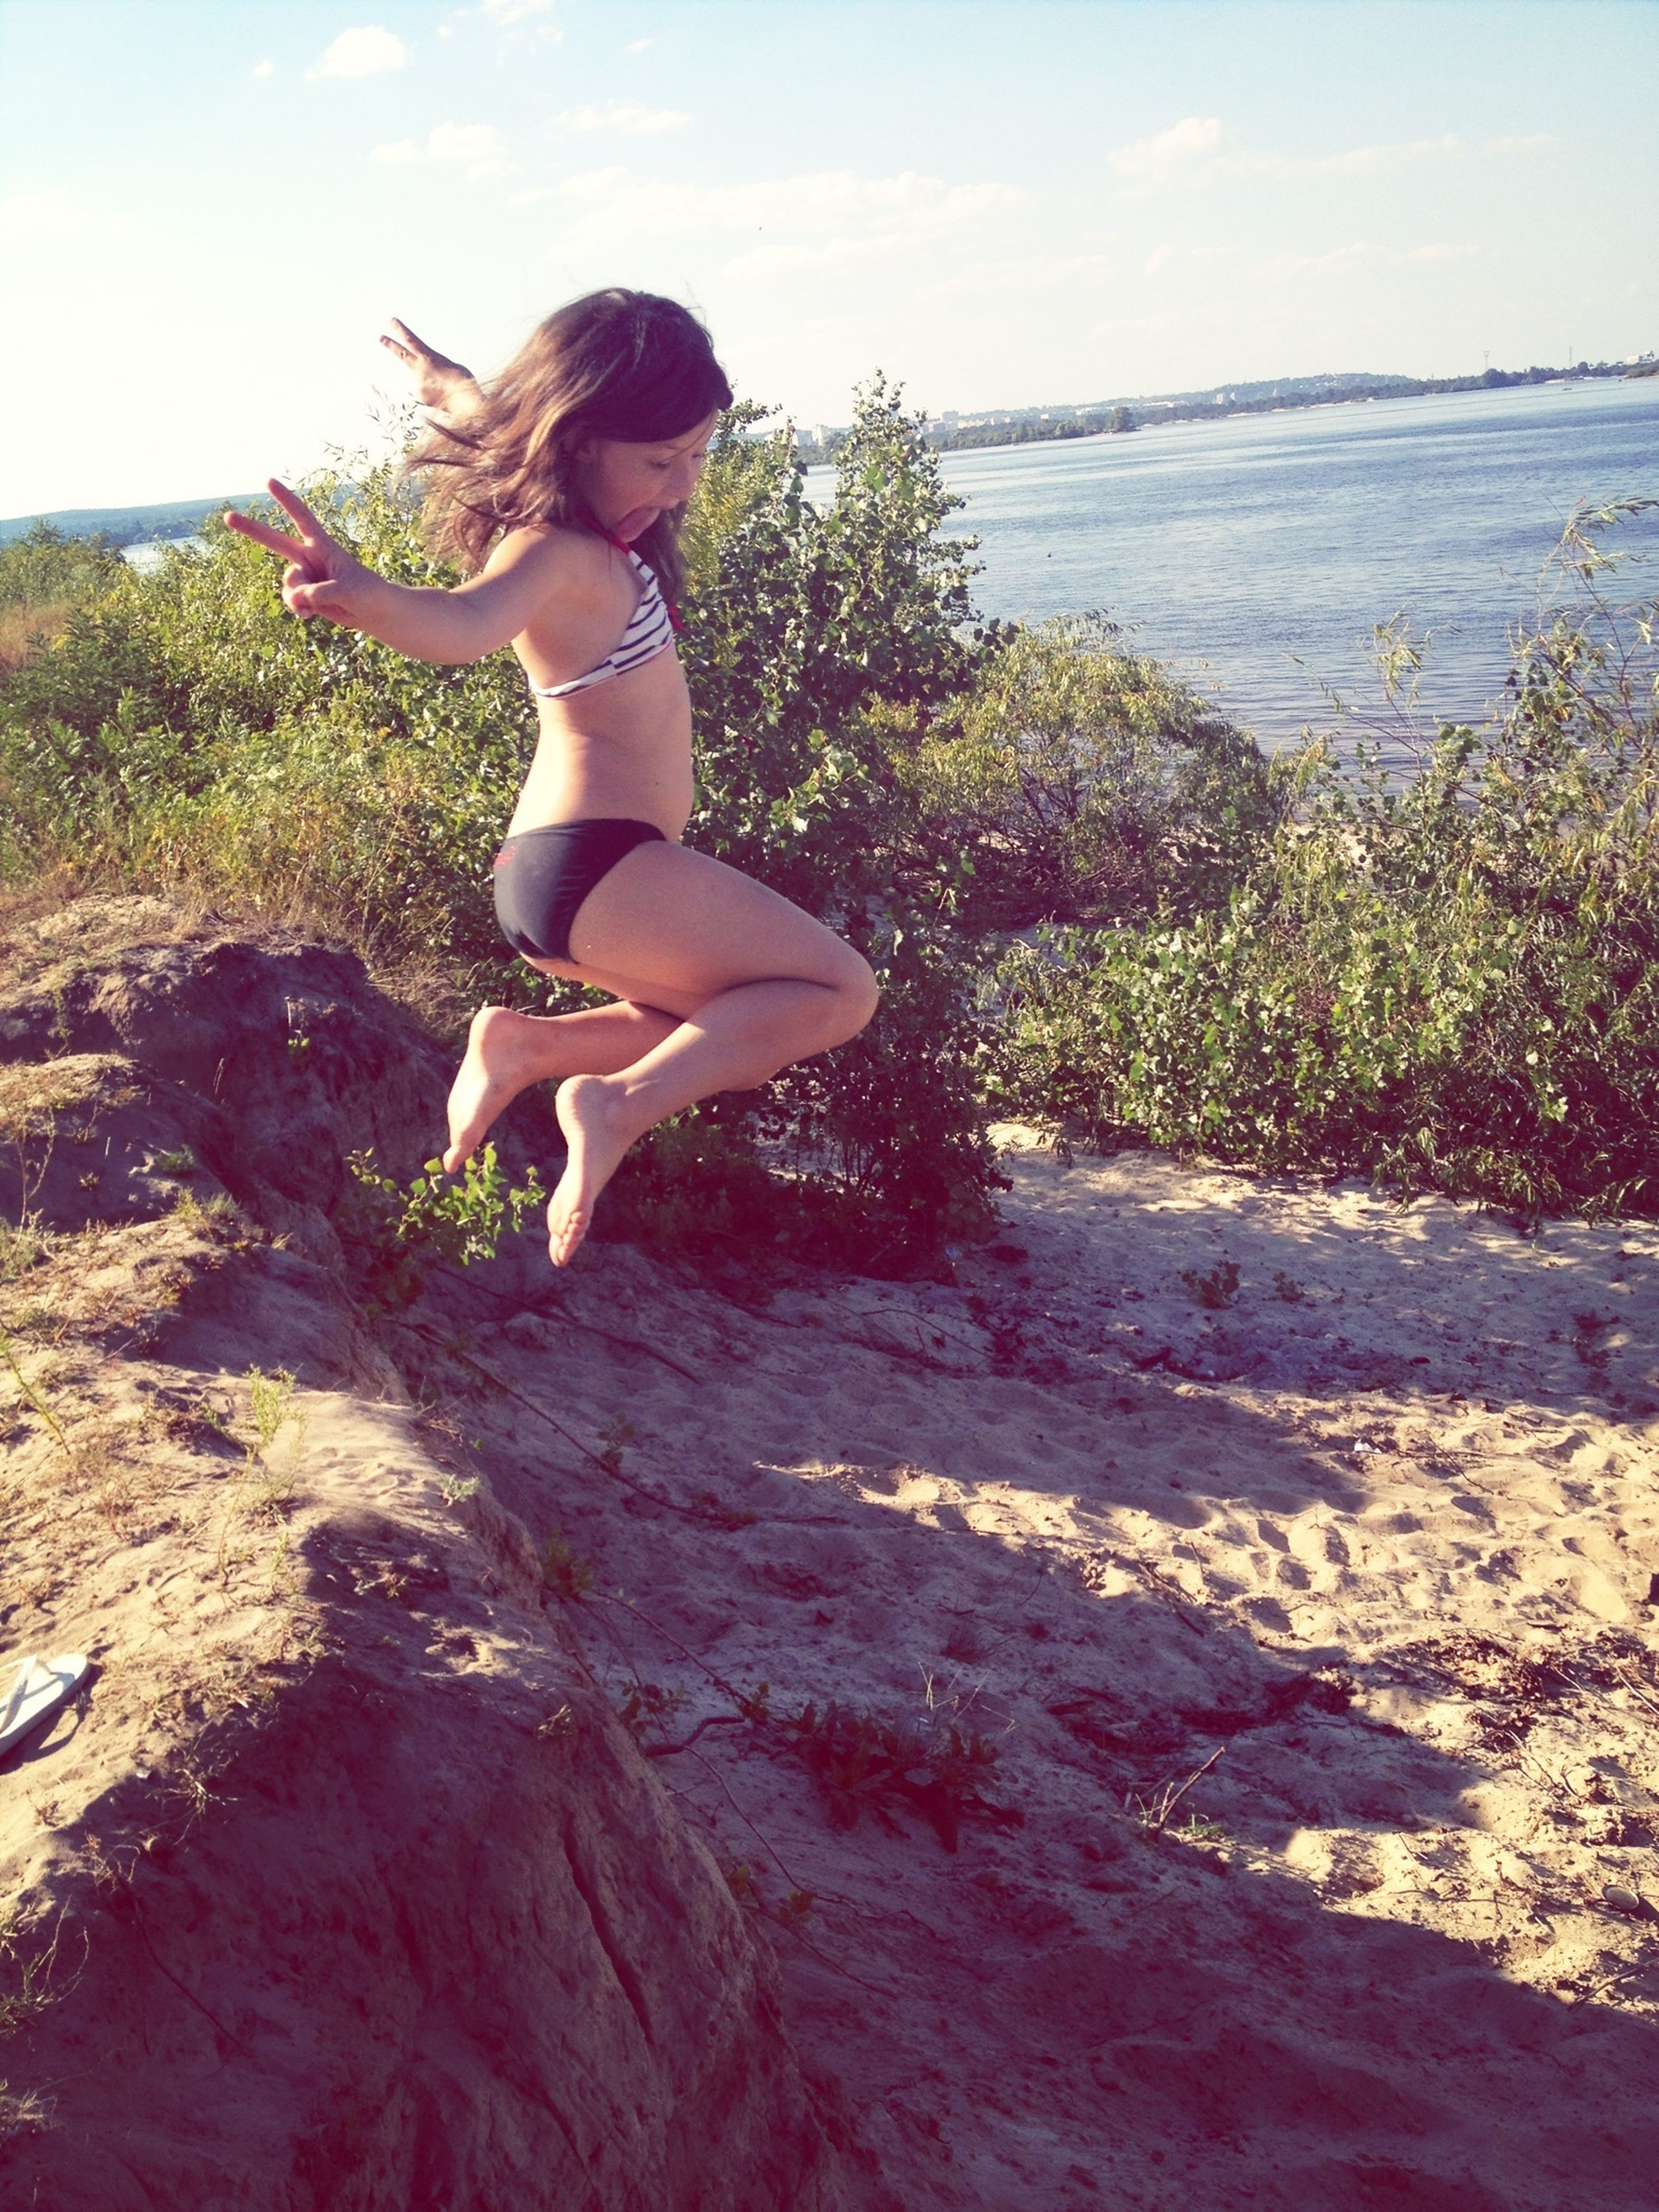 full length, lifestyles, young adult, leisure activity, young women, person, casual clothing, sky, jumping, arms outstretched, mid-air, carefree, side view, standing, enjoyment, fun, water, beach